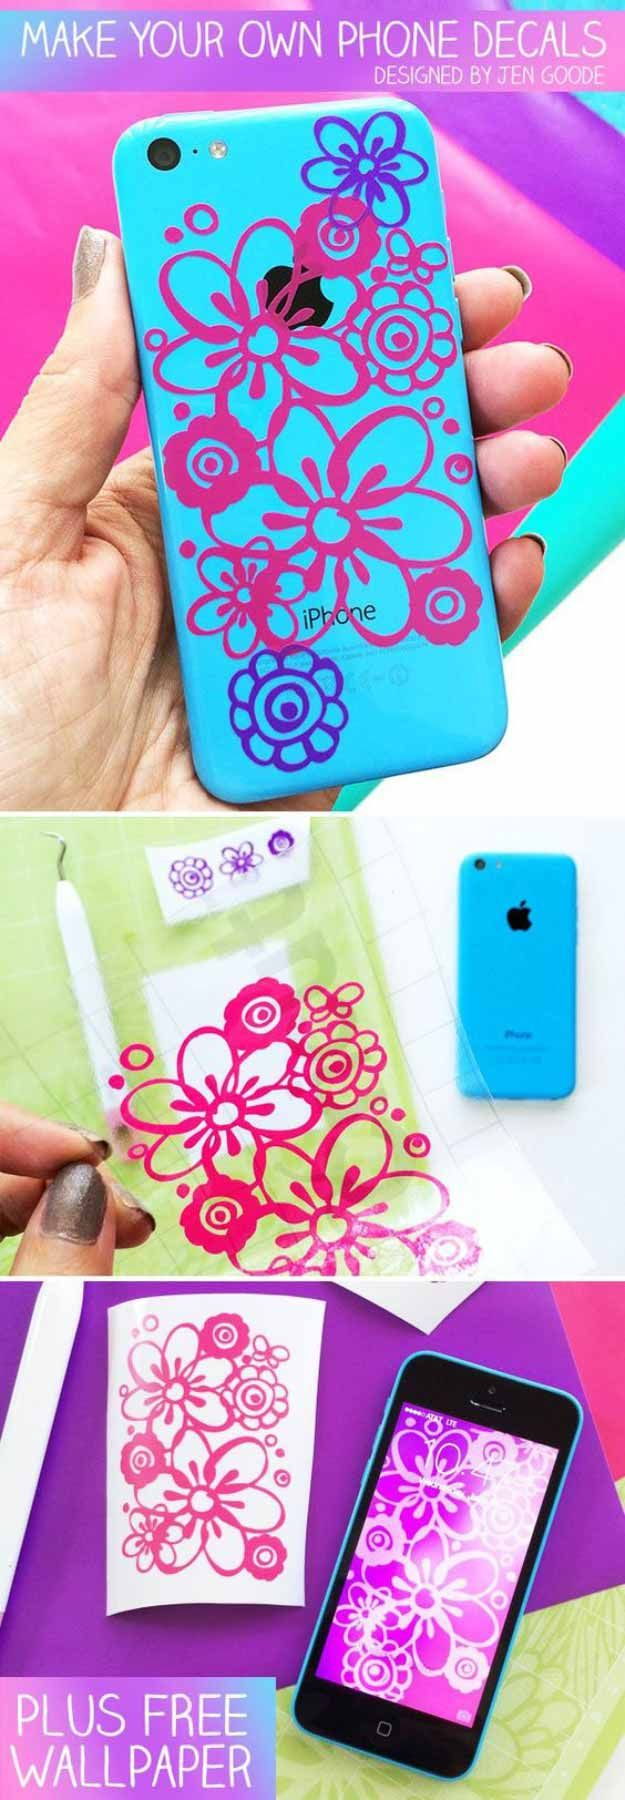 Best  Iphone Decal Ideas On Pinterest Mac Laptop Stickers - Make your own decal for laptop